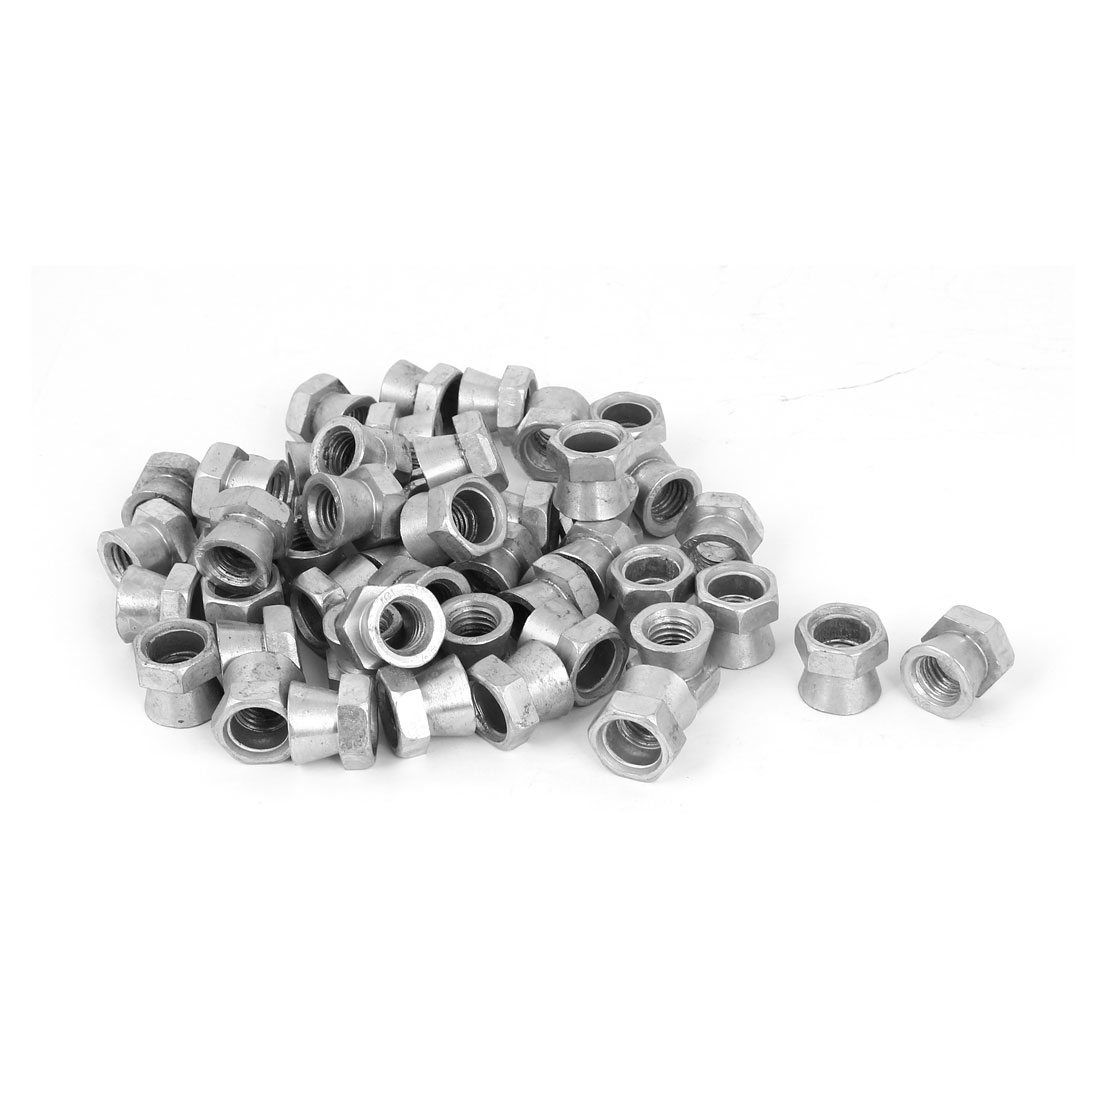 M12 Metric Thread Tamper Proof Galvanised Security Shear Nuts 50 Pcs